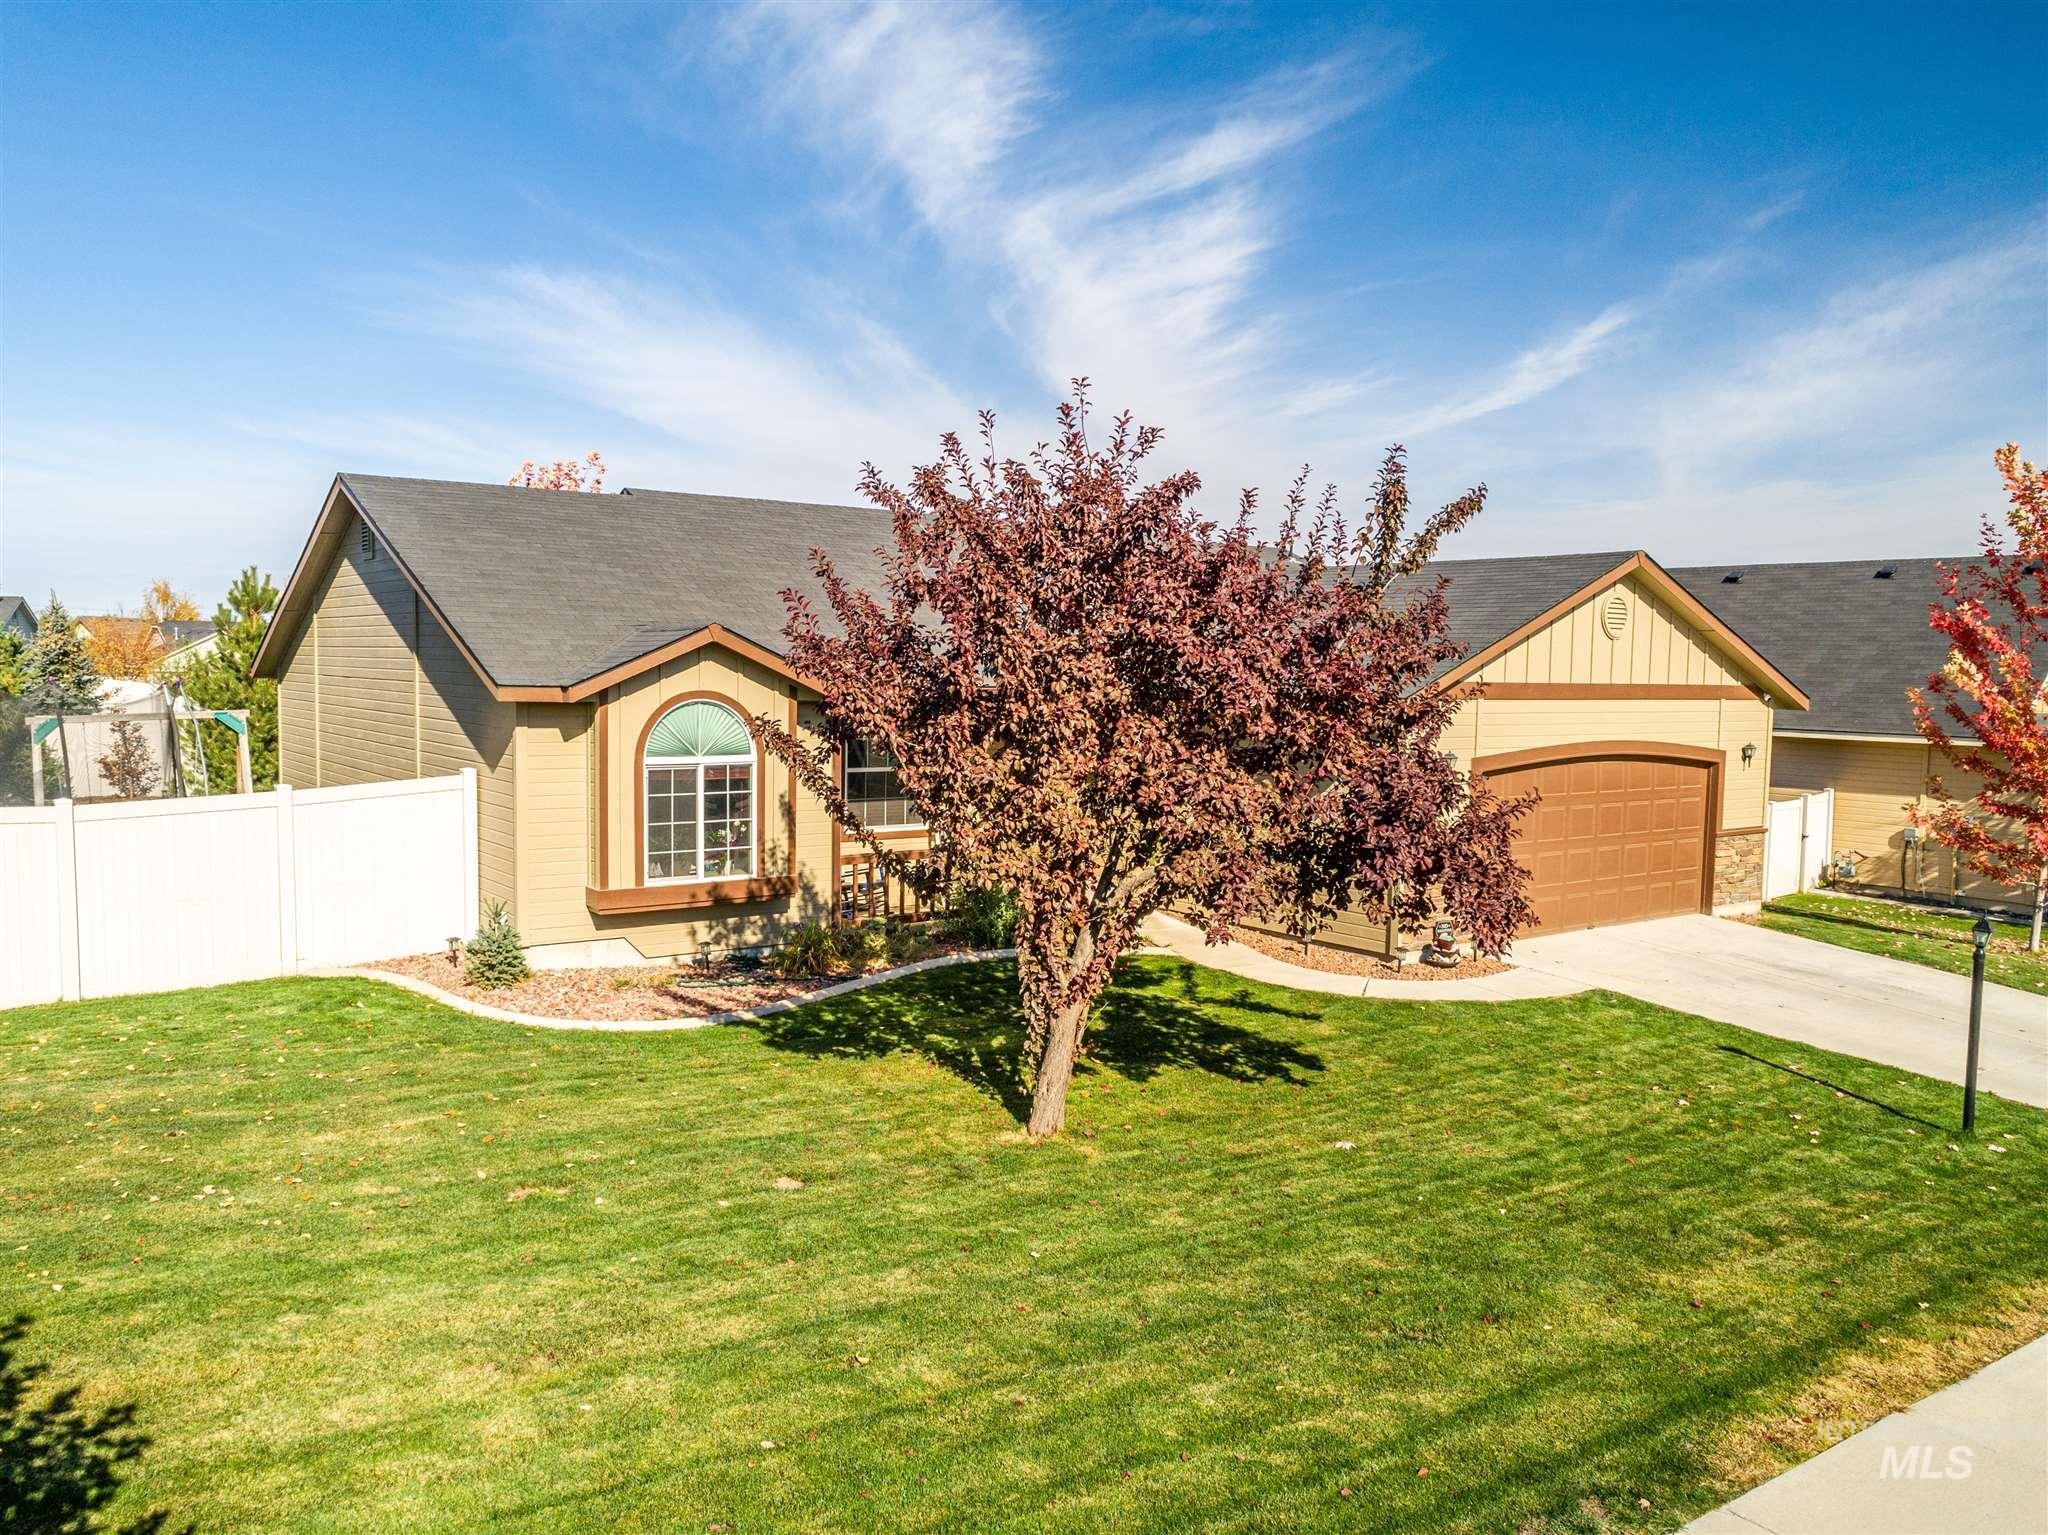 14416 Fewkes St, Caldwell, Idaho 83607, 4 Bedrooms, 2 Bathrooms, Residential For Sale, Price $299,900, 98785147